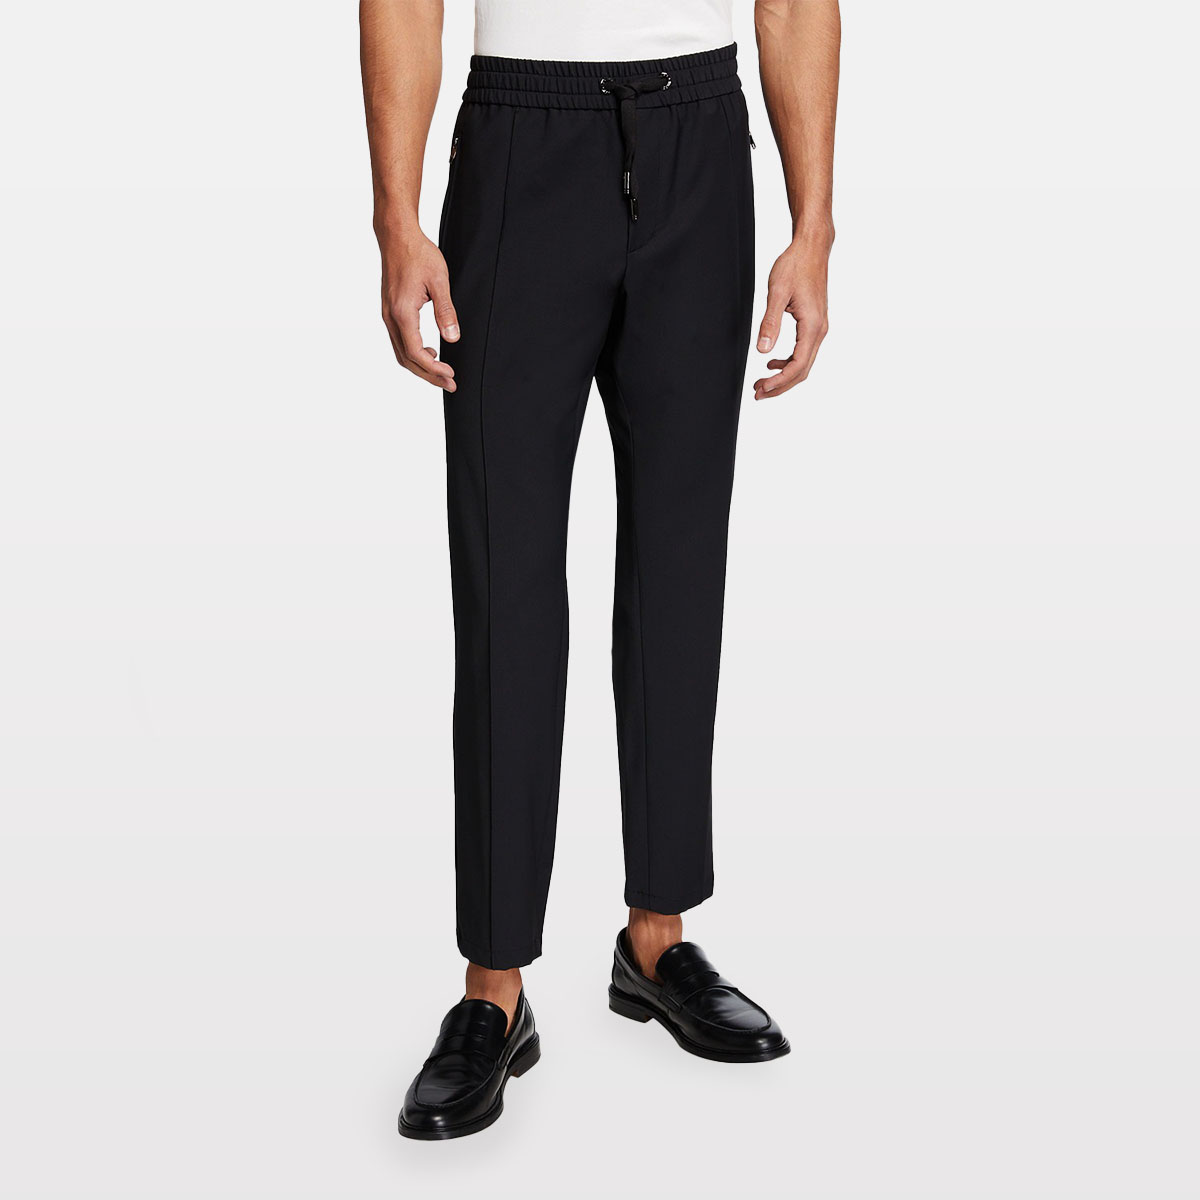 Dolce & Gabbana Men's High-Waist Wool Jogger Pants